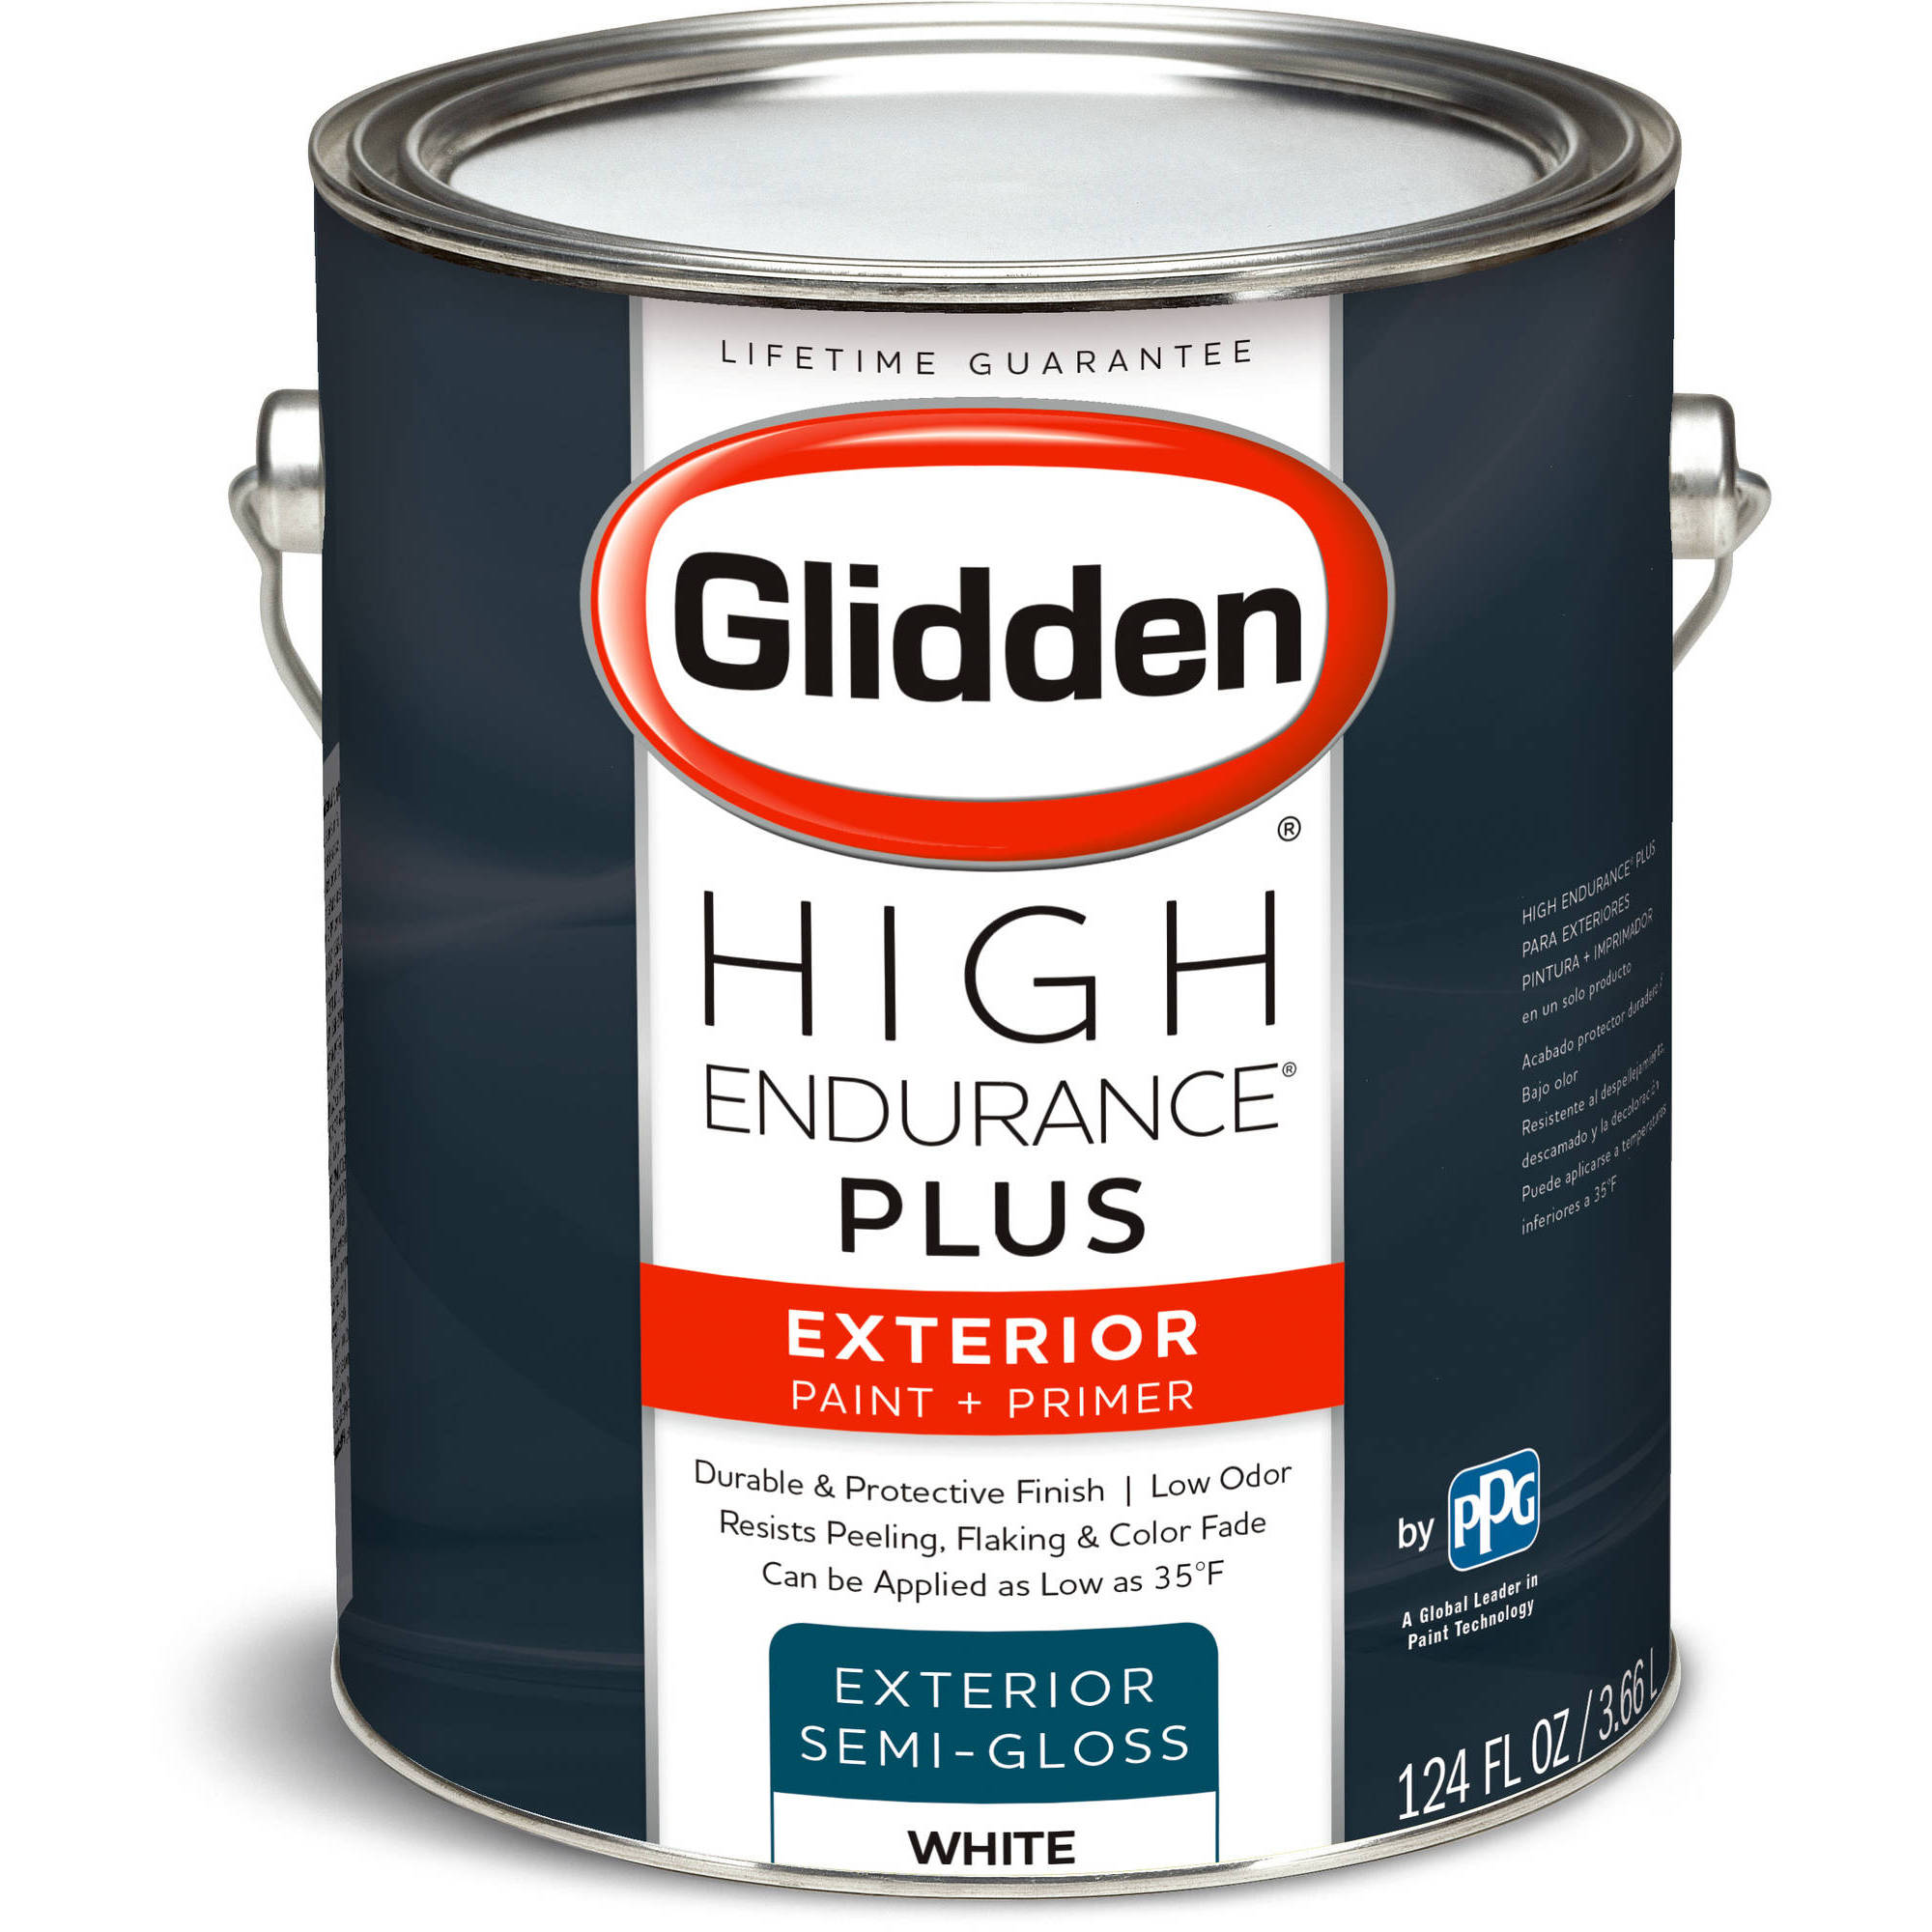 Glidden High Endurance Plus Exterior Paint And Primer Ready Mix White